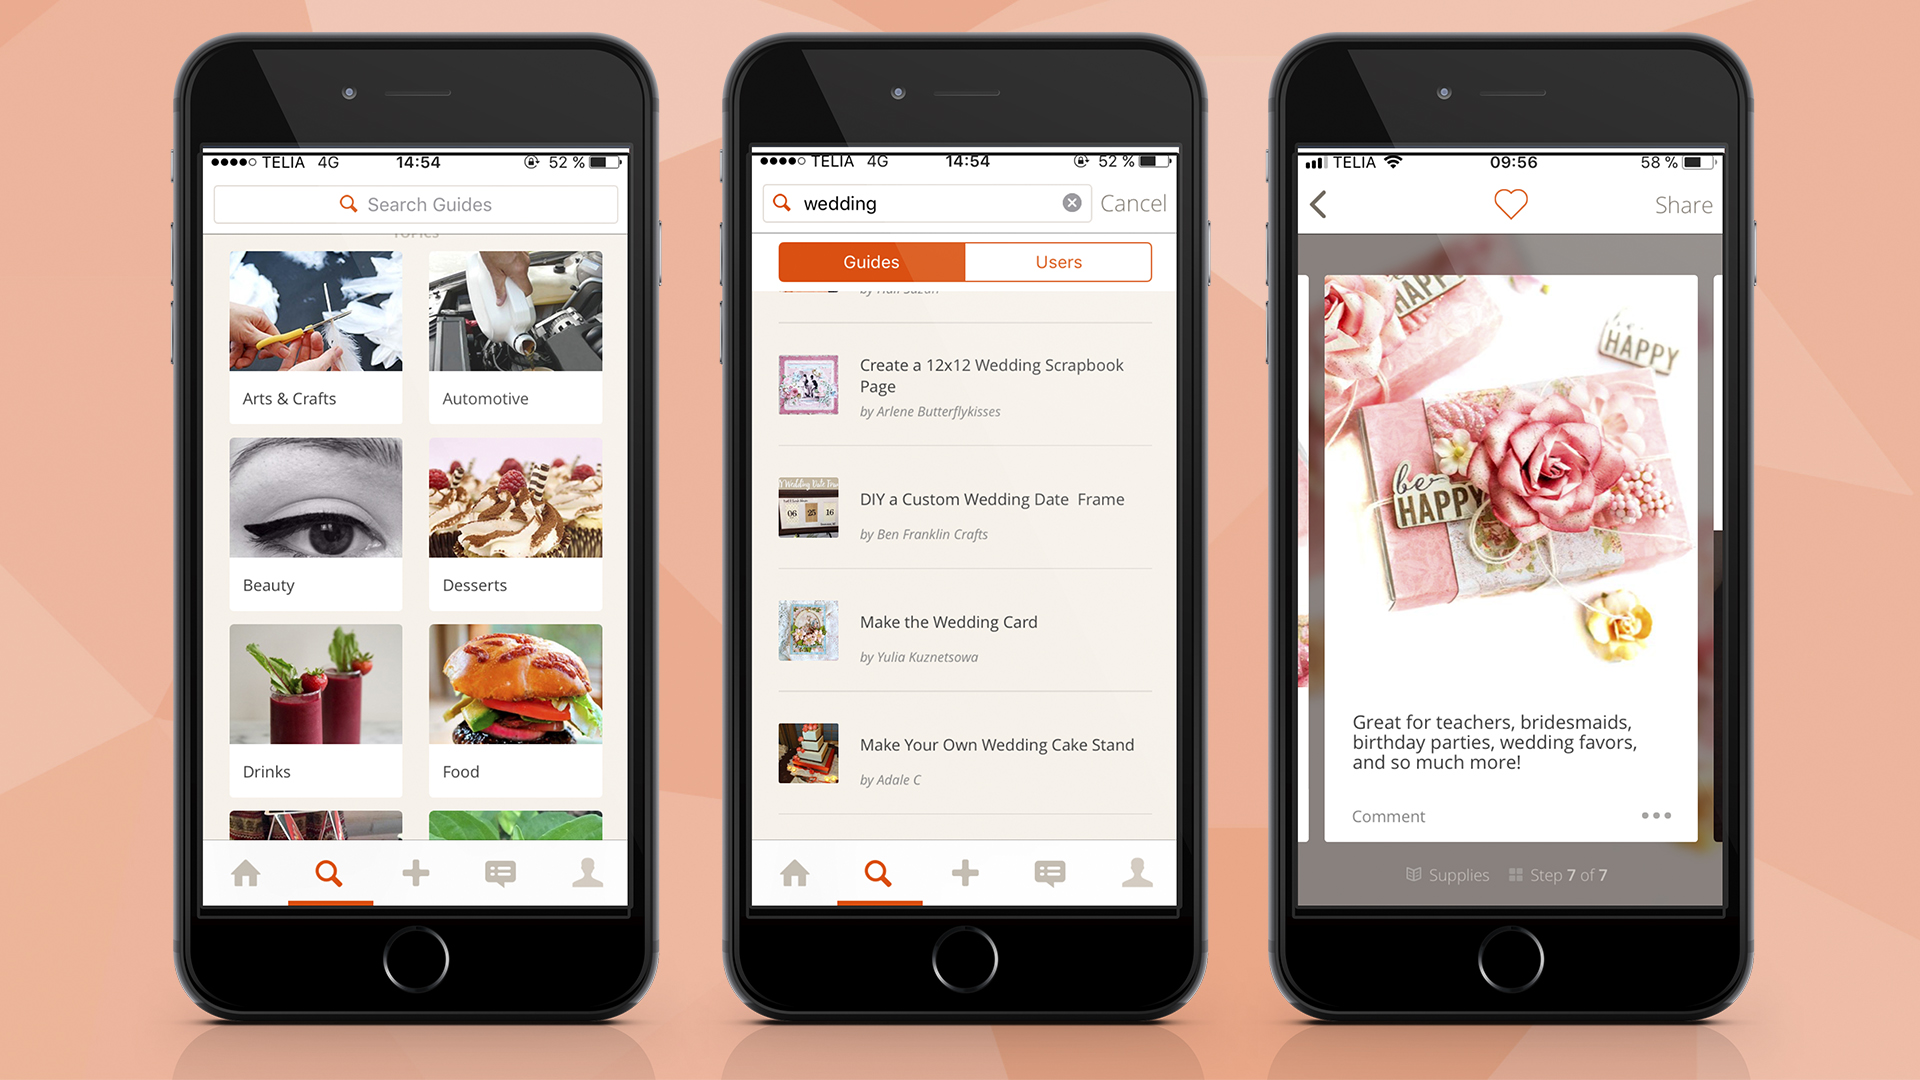 Snapguide app easier experience for wedding planning